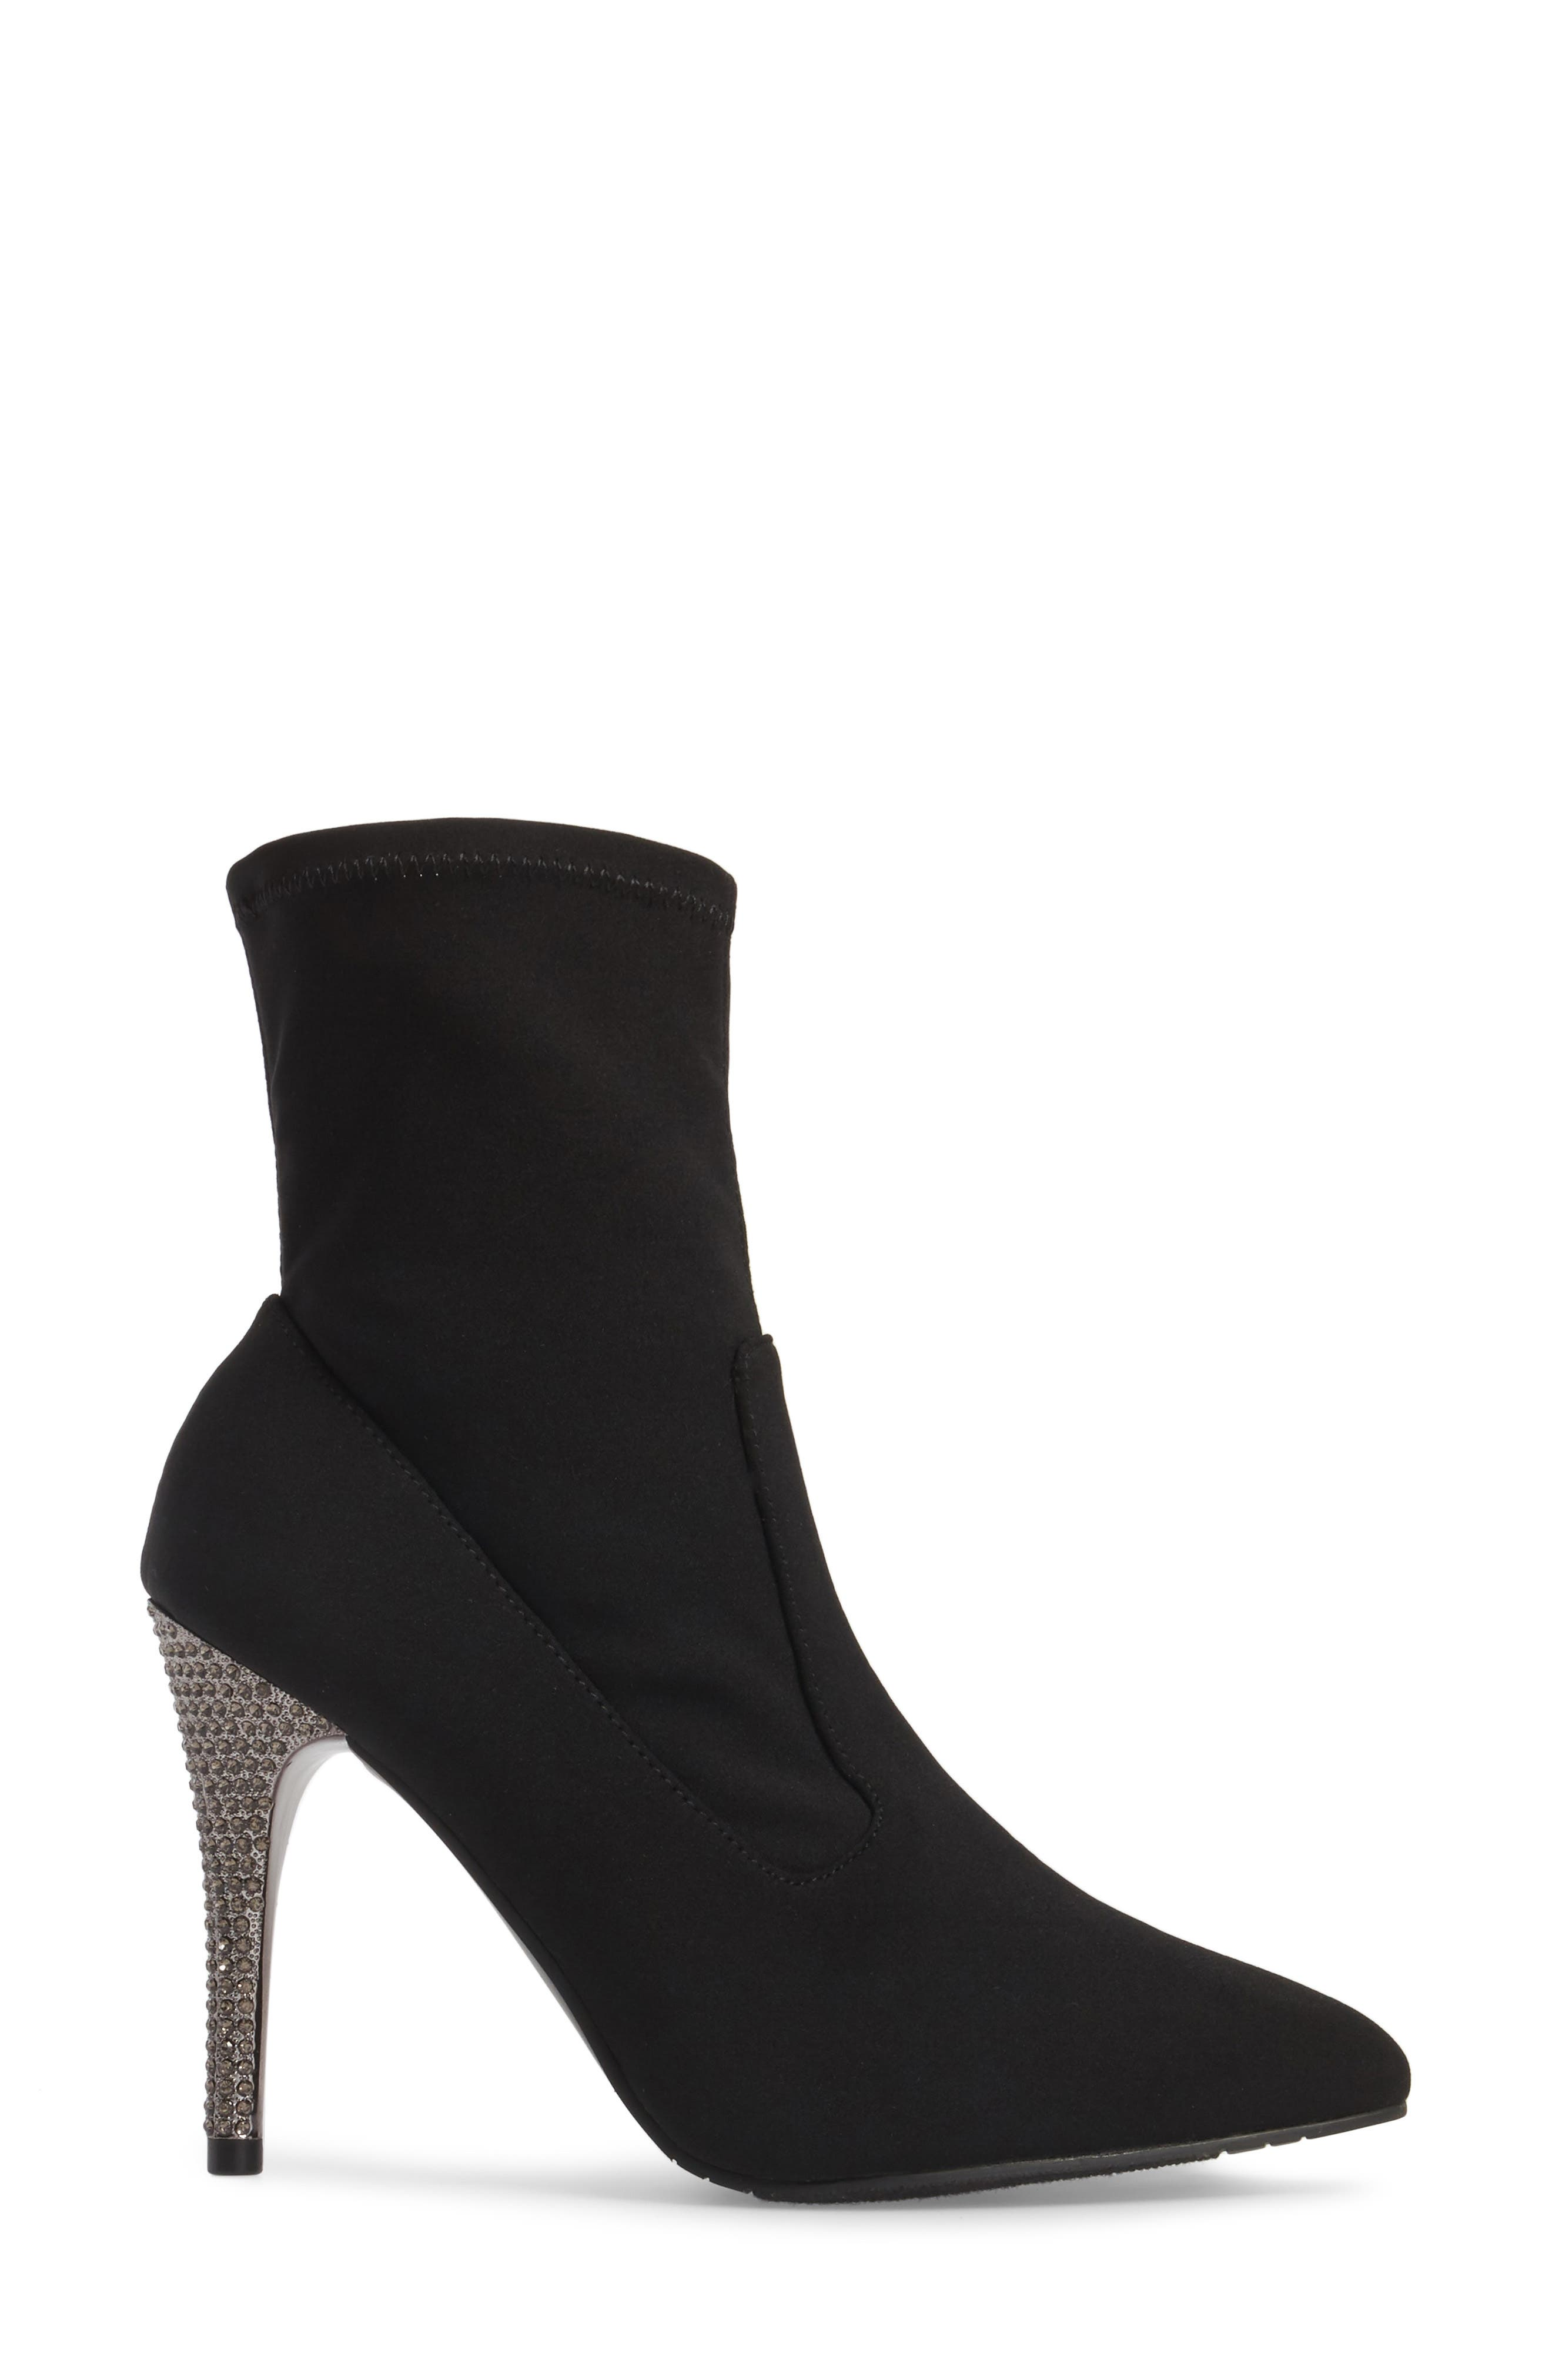 Roxie Bootie,                             Alternate thumbnail 3, color,                             Black Fabric